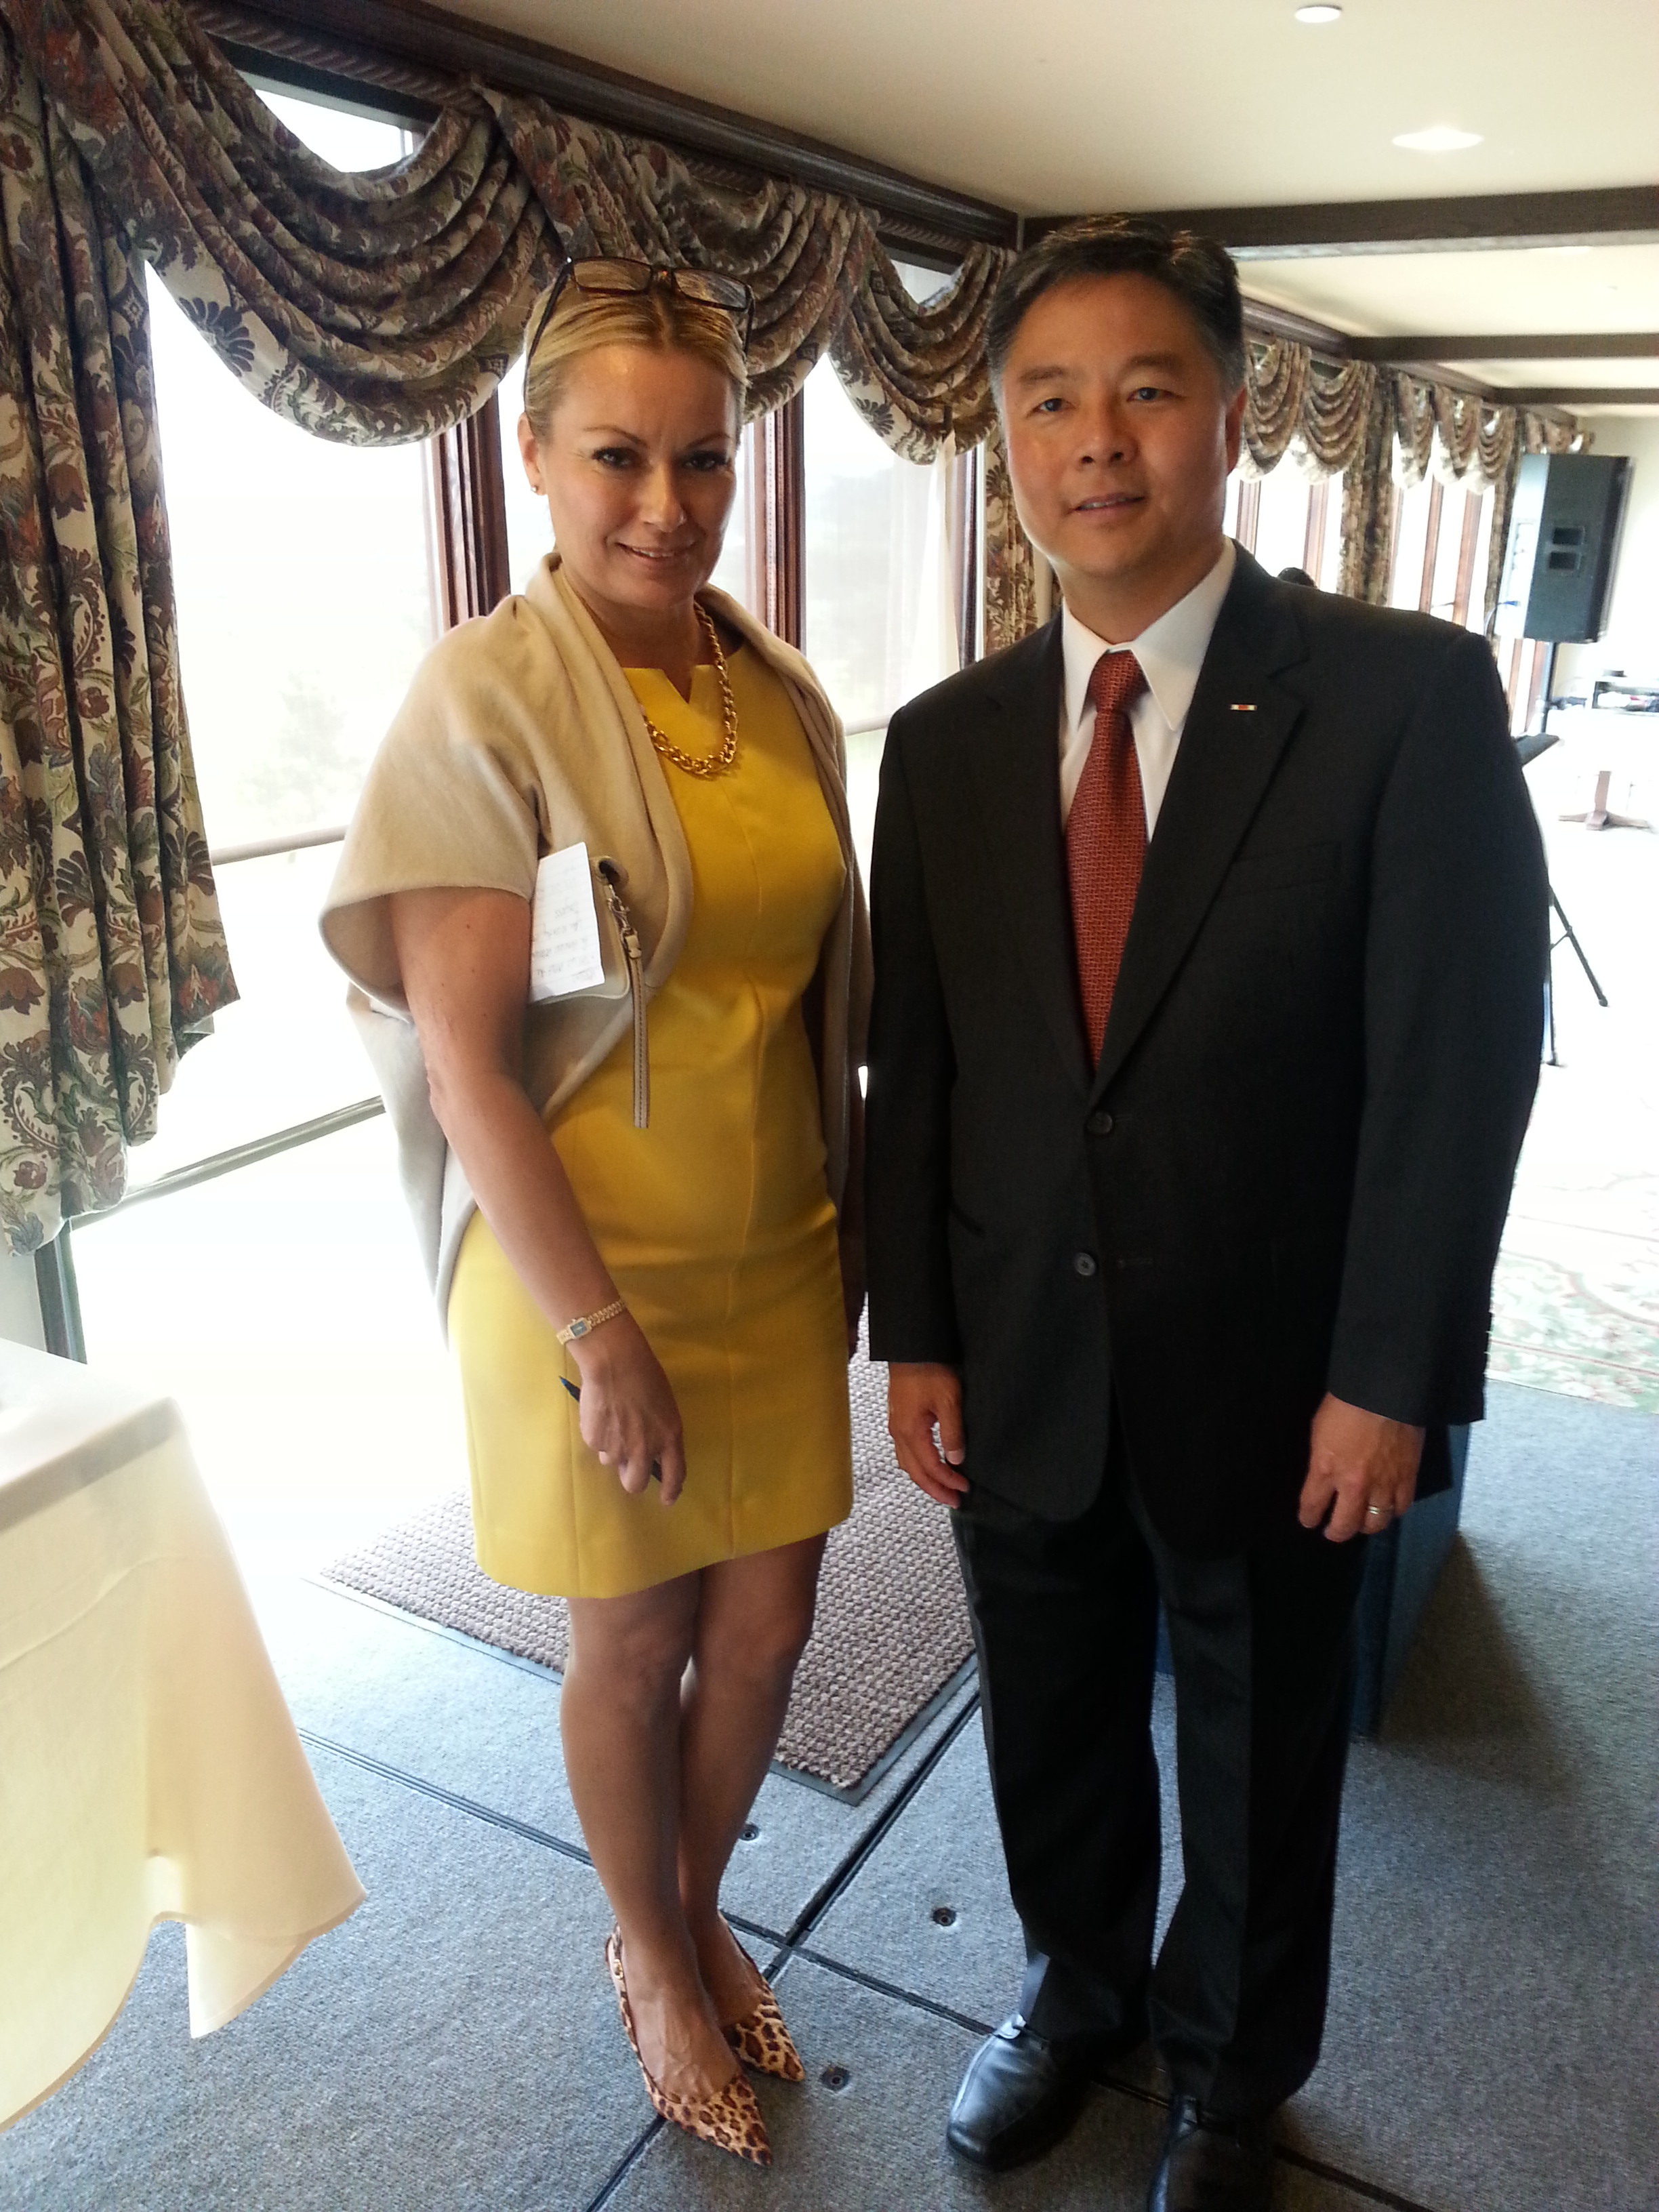 Meets with Congressman Ted Lieu